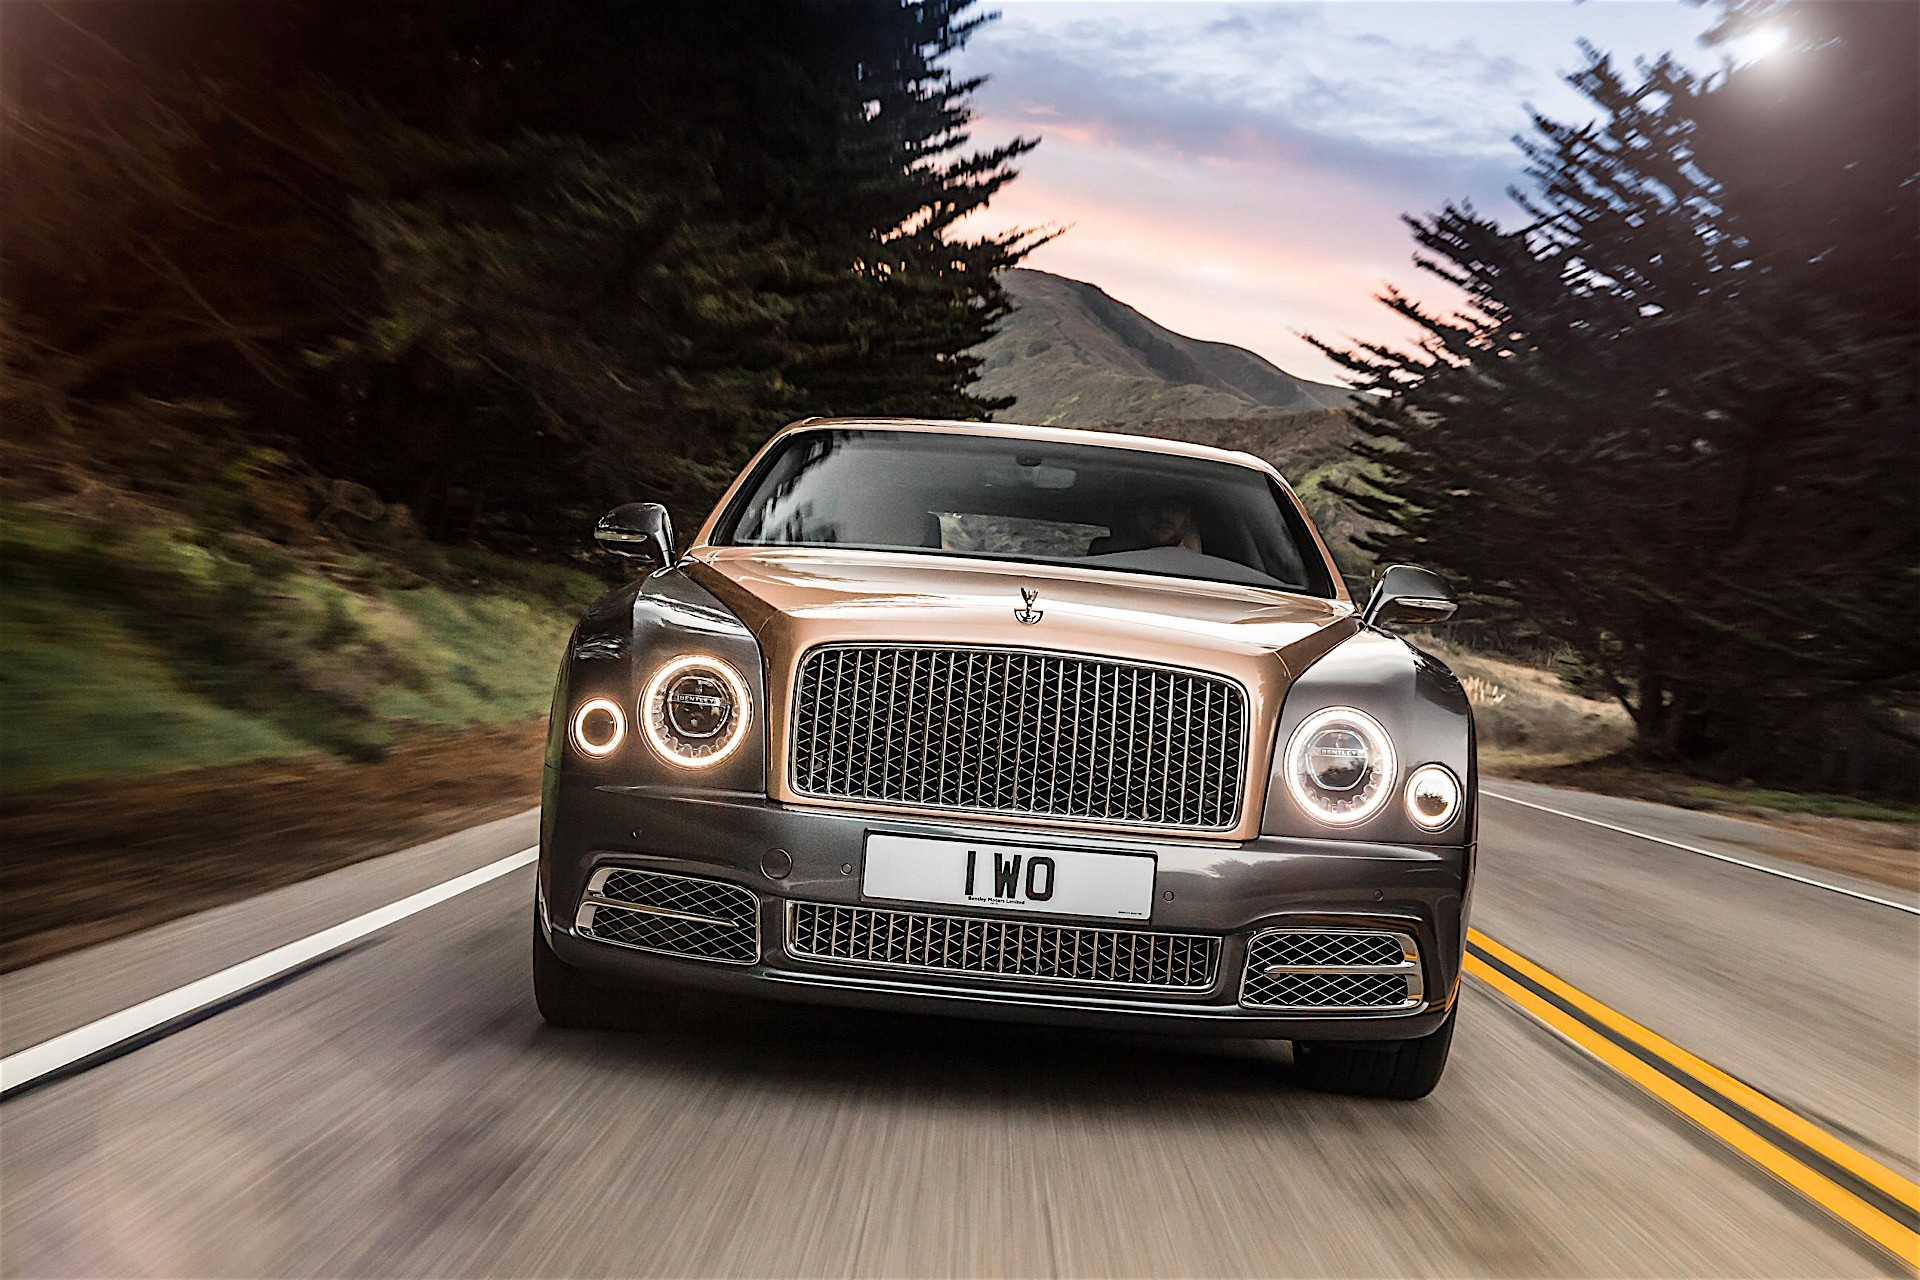 2017 Bentley Mulsanne Facelift Revealed New Grille More Power and